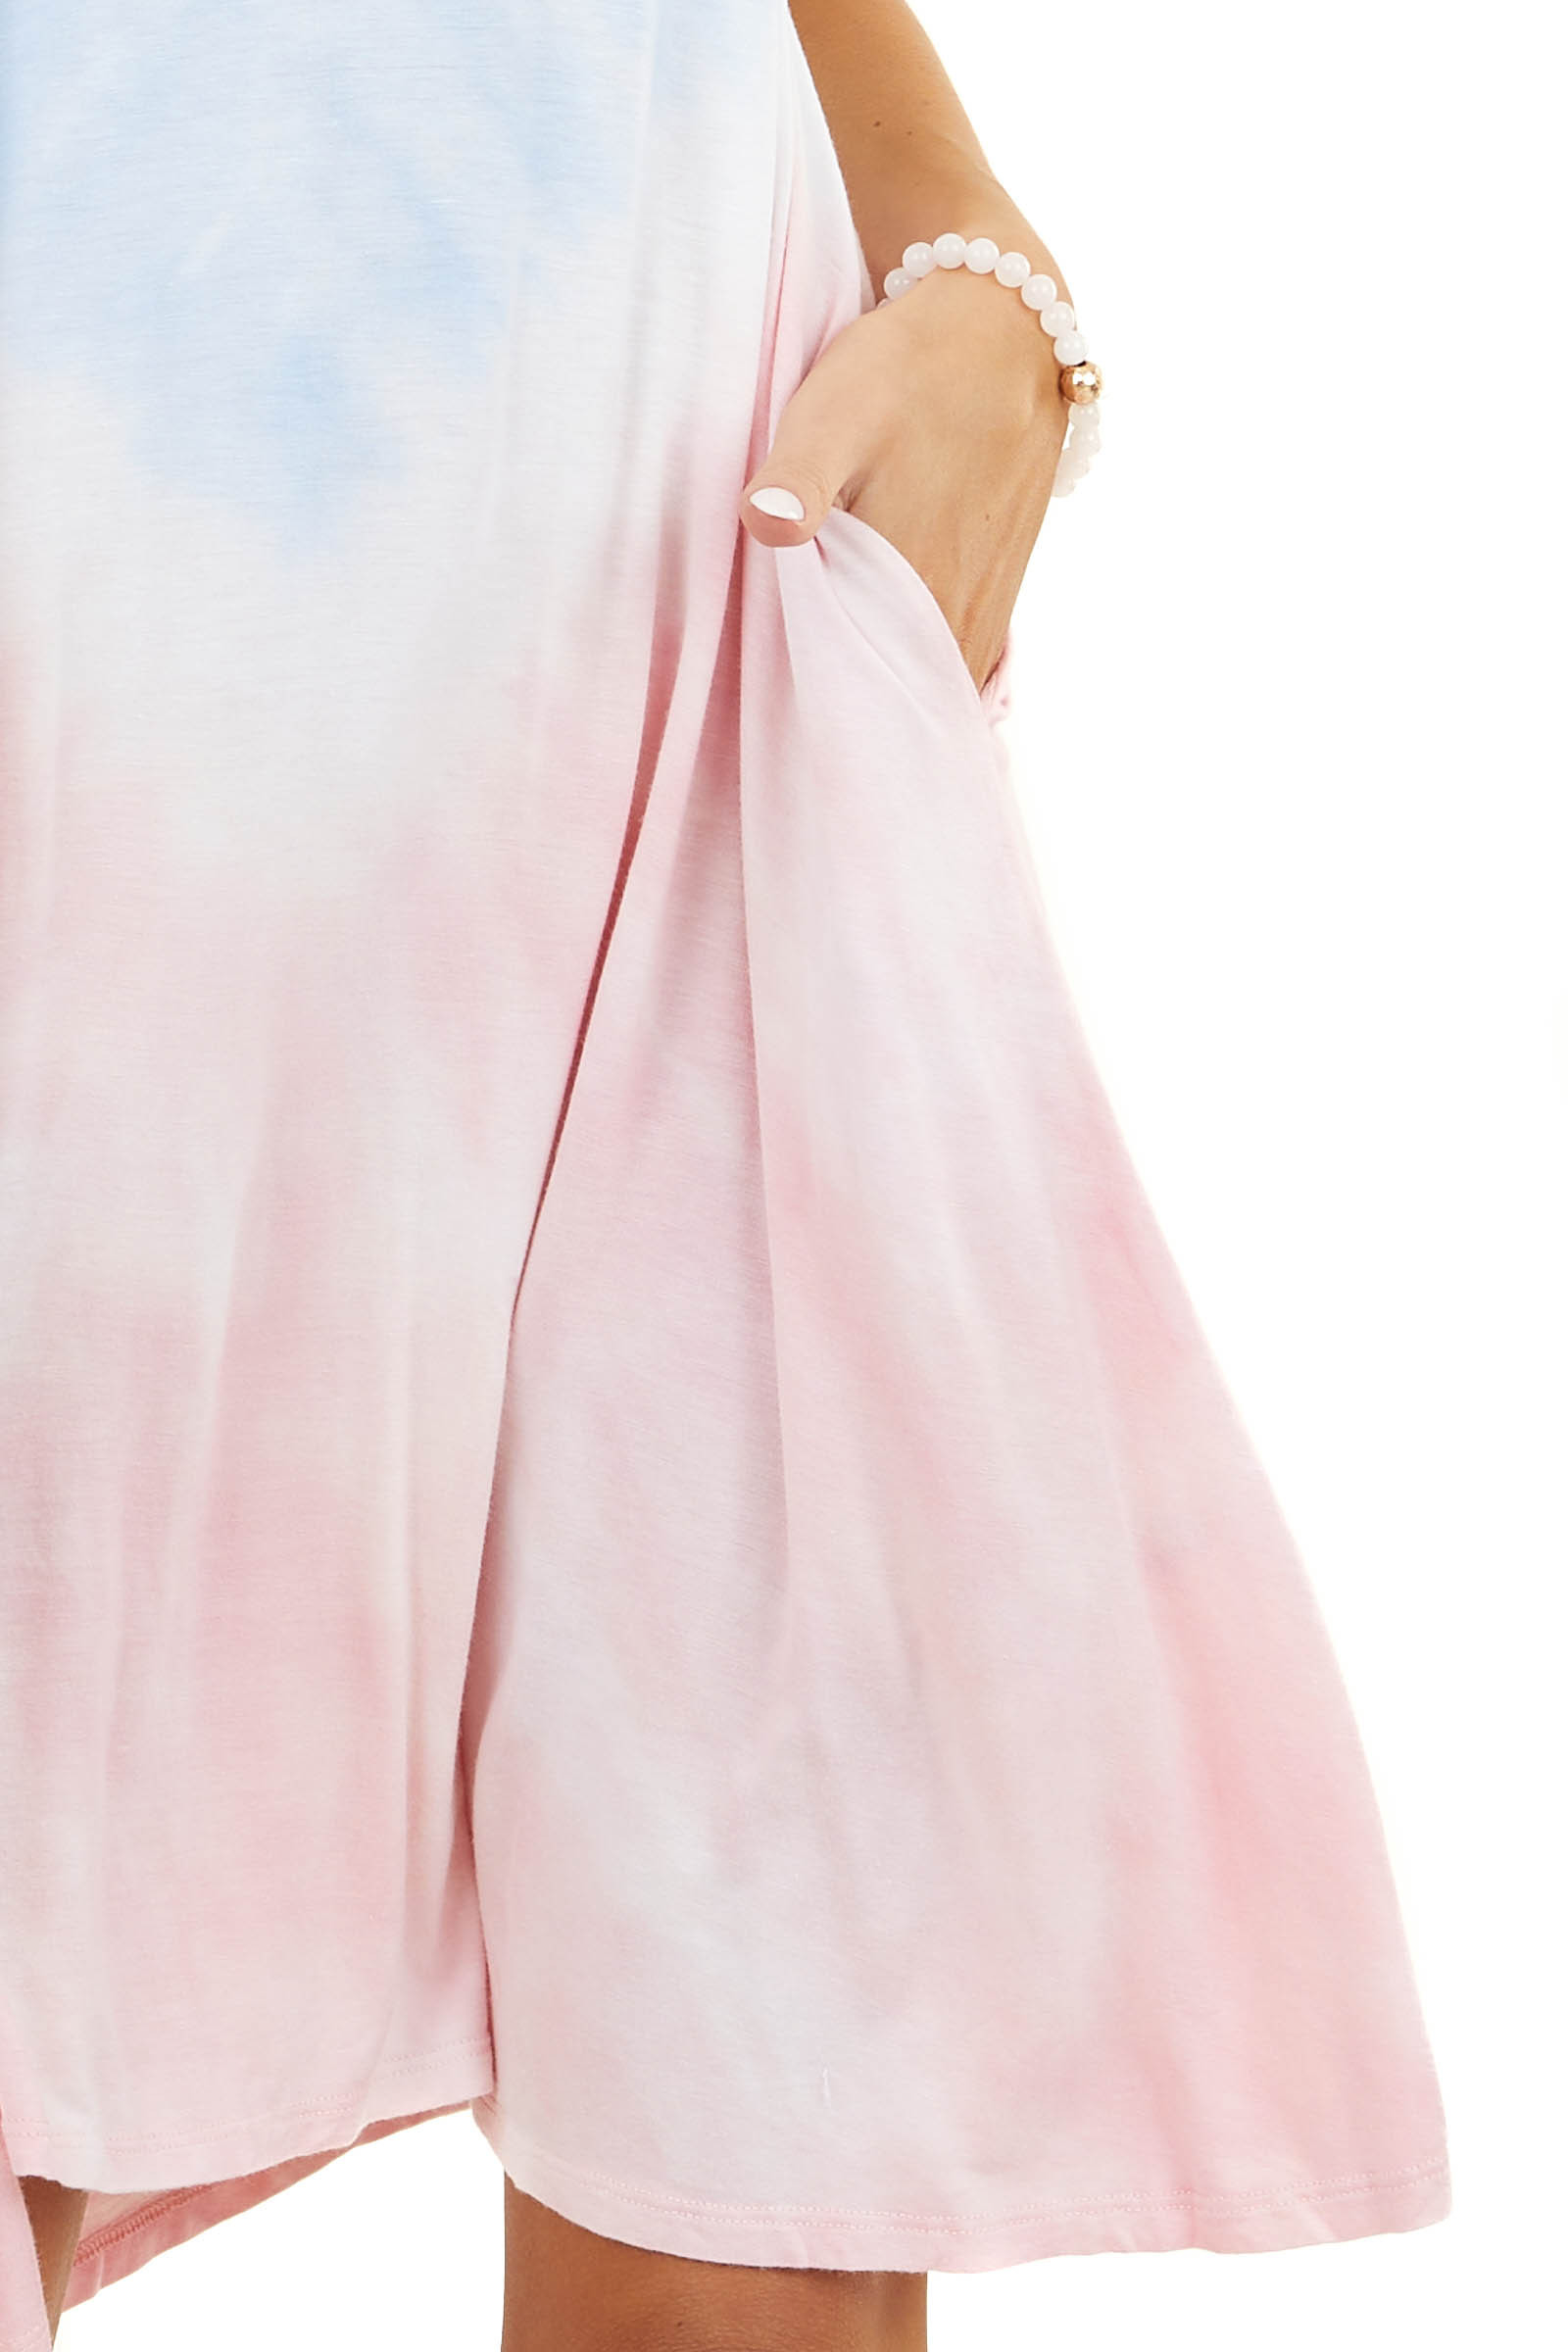 Baby Blue and Light Pink Tie Dye Short Dress with Pockets